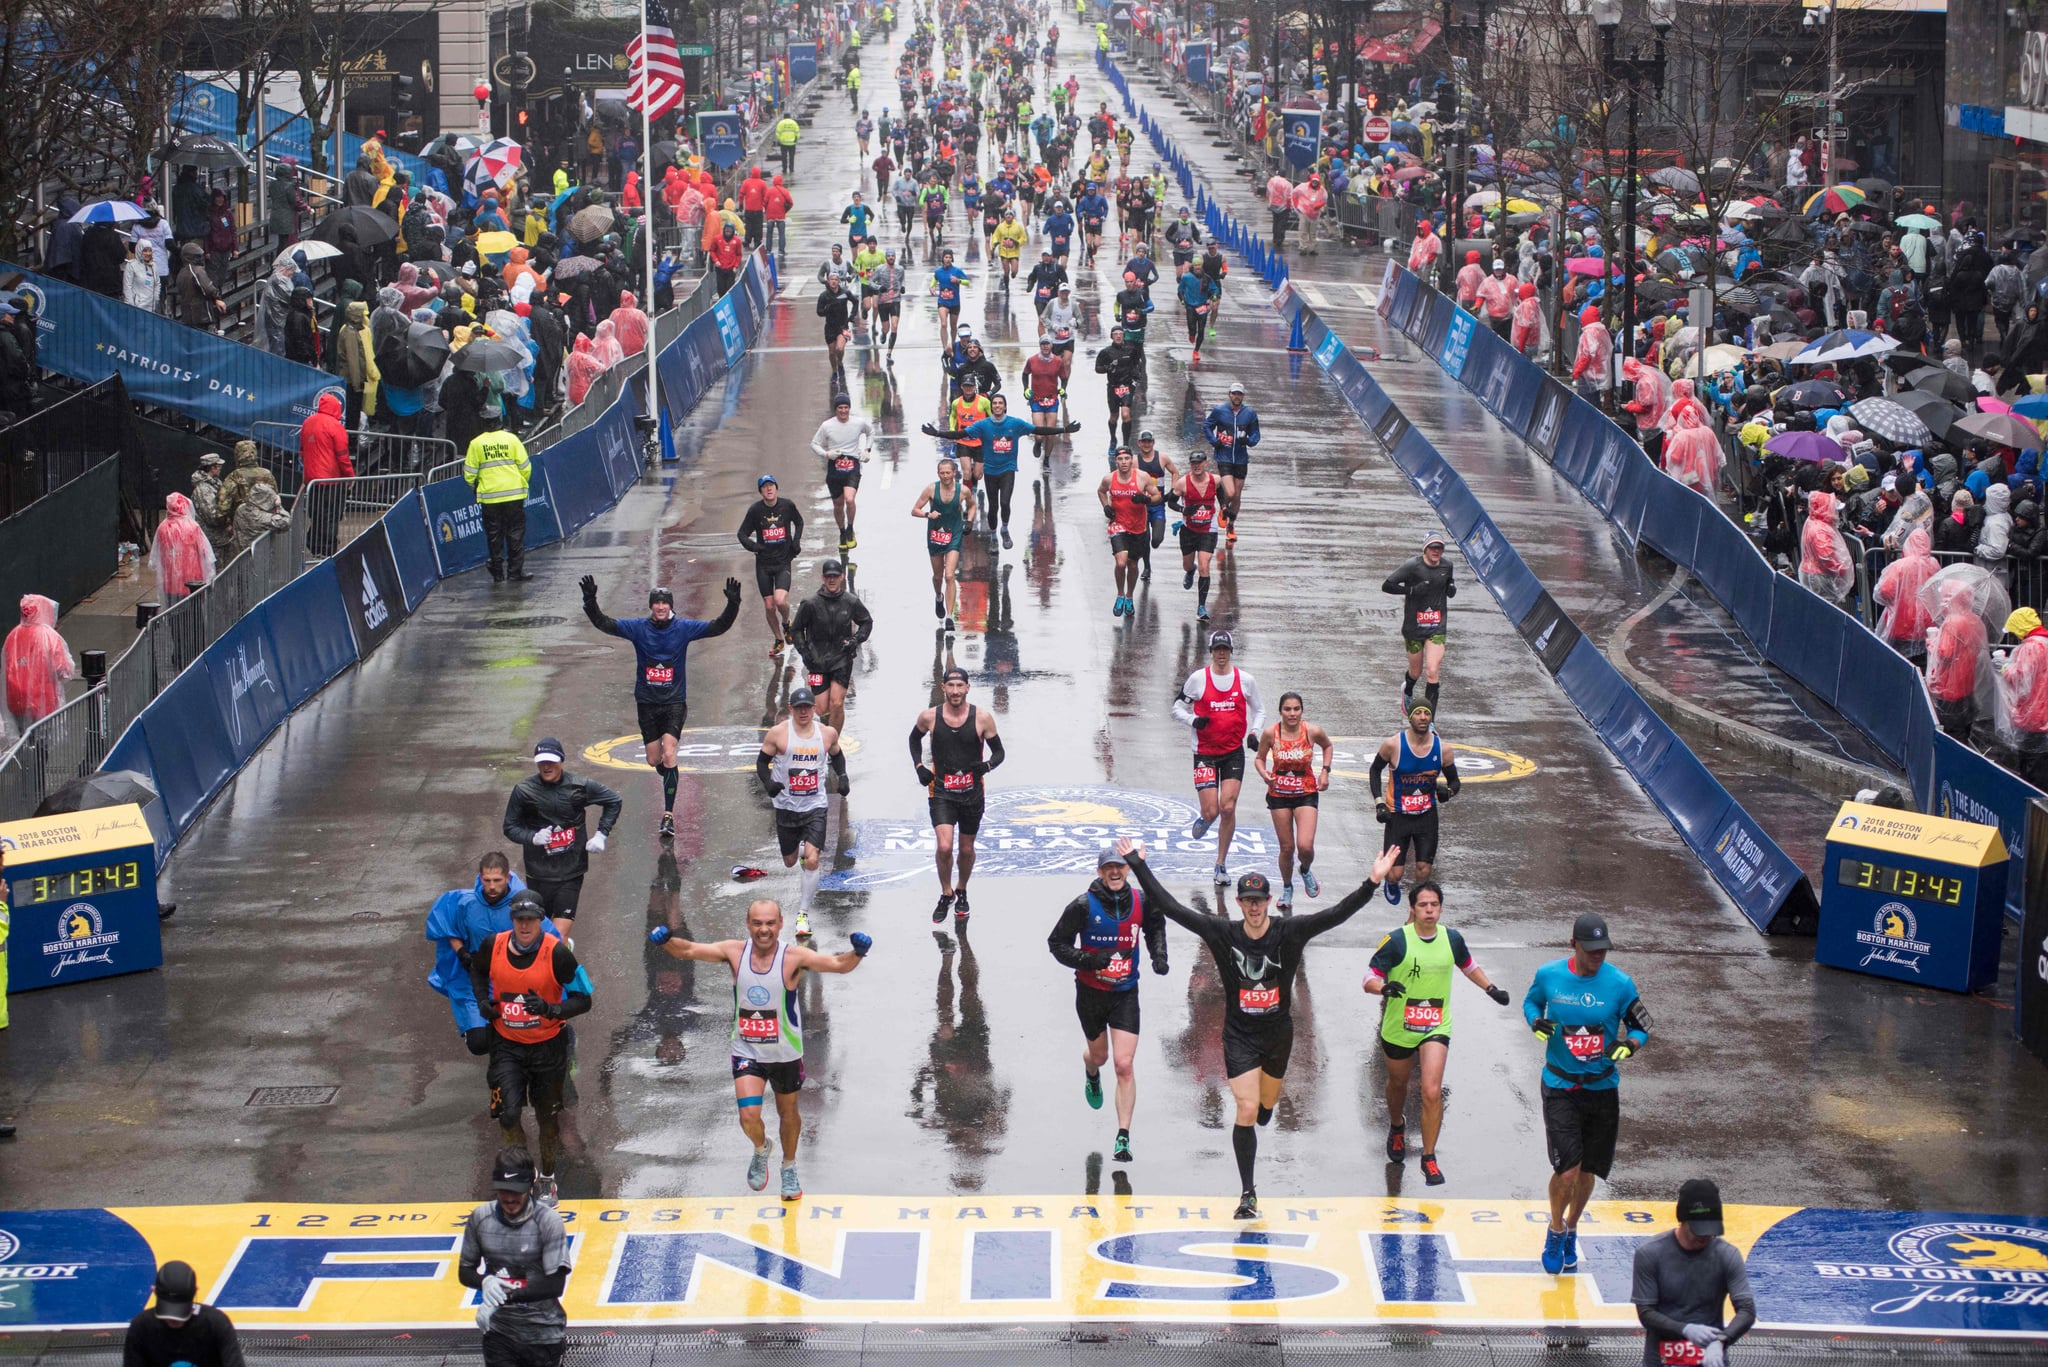 Runners come to the finish line of the 122nd Boston Marathon, where rain and high winds battered down for the duration. Monday April 16, 2018.  / AFP PHOTO / RYAN MCBRIDE        (Photo credit should read RYAN MCBRIDE/AFP/Getty Images)